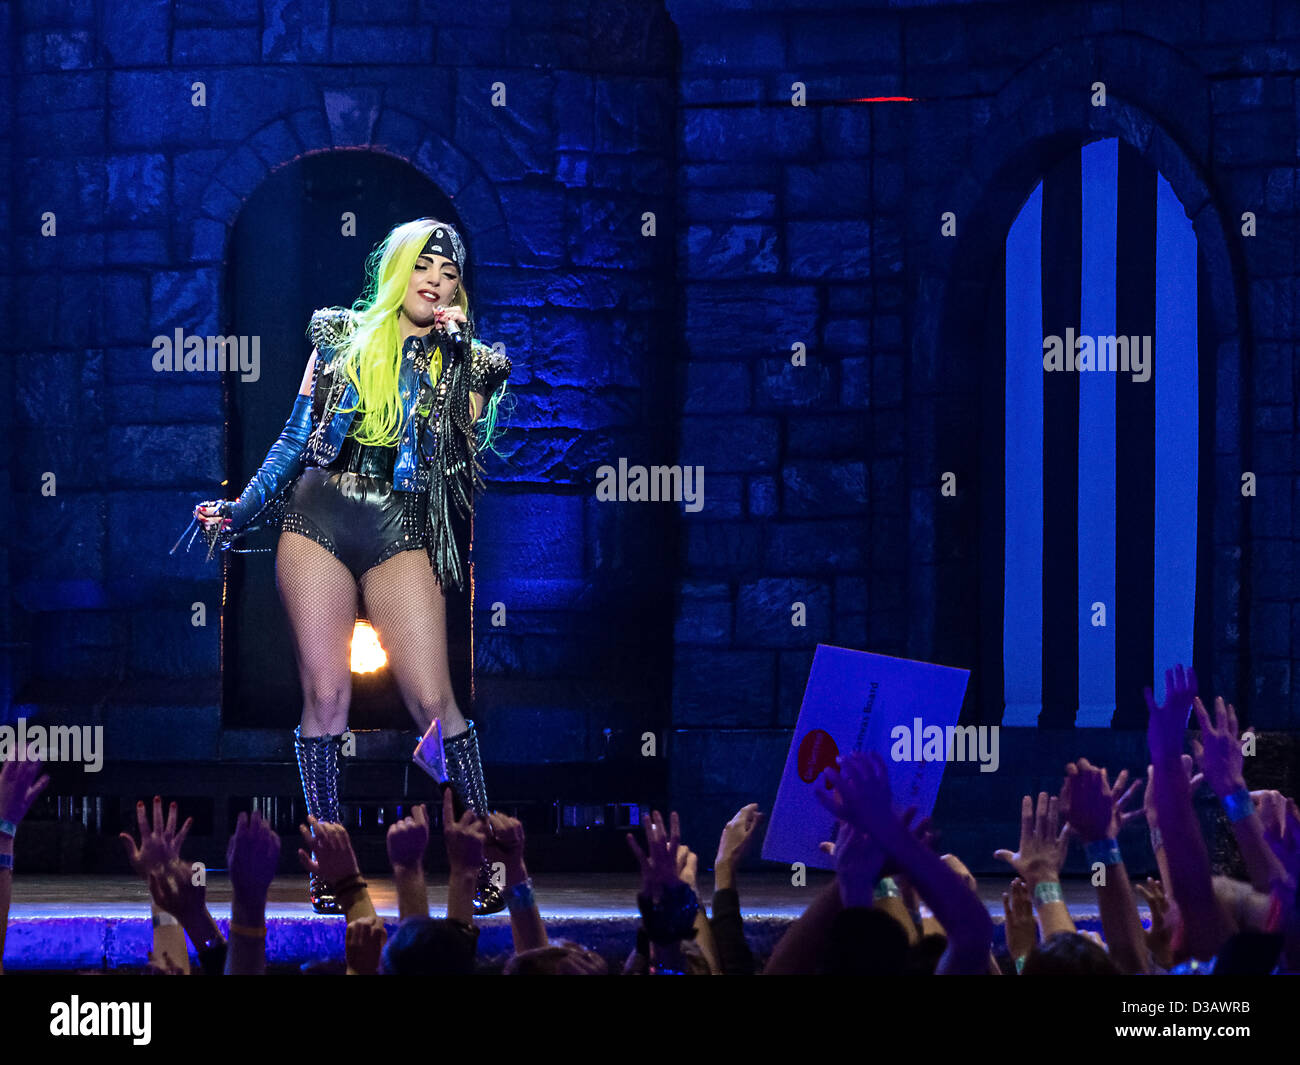 American singer Lady Gaga performs during her Born This Way